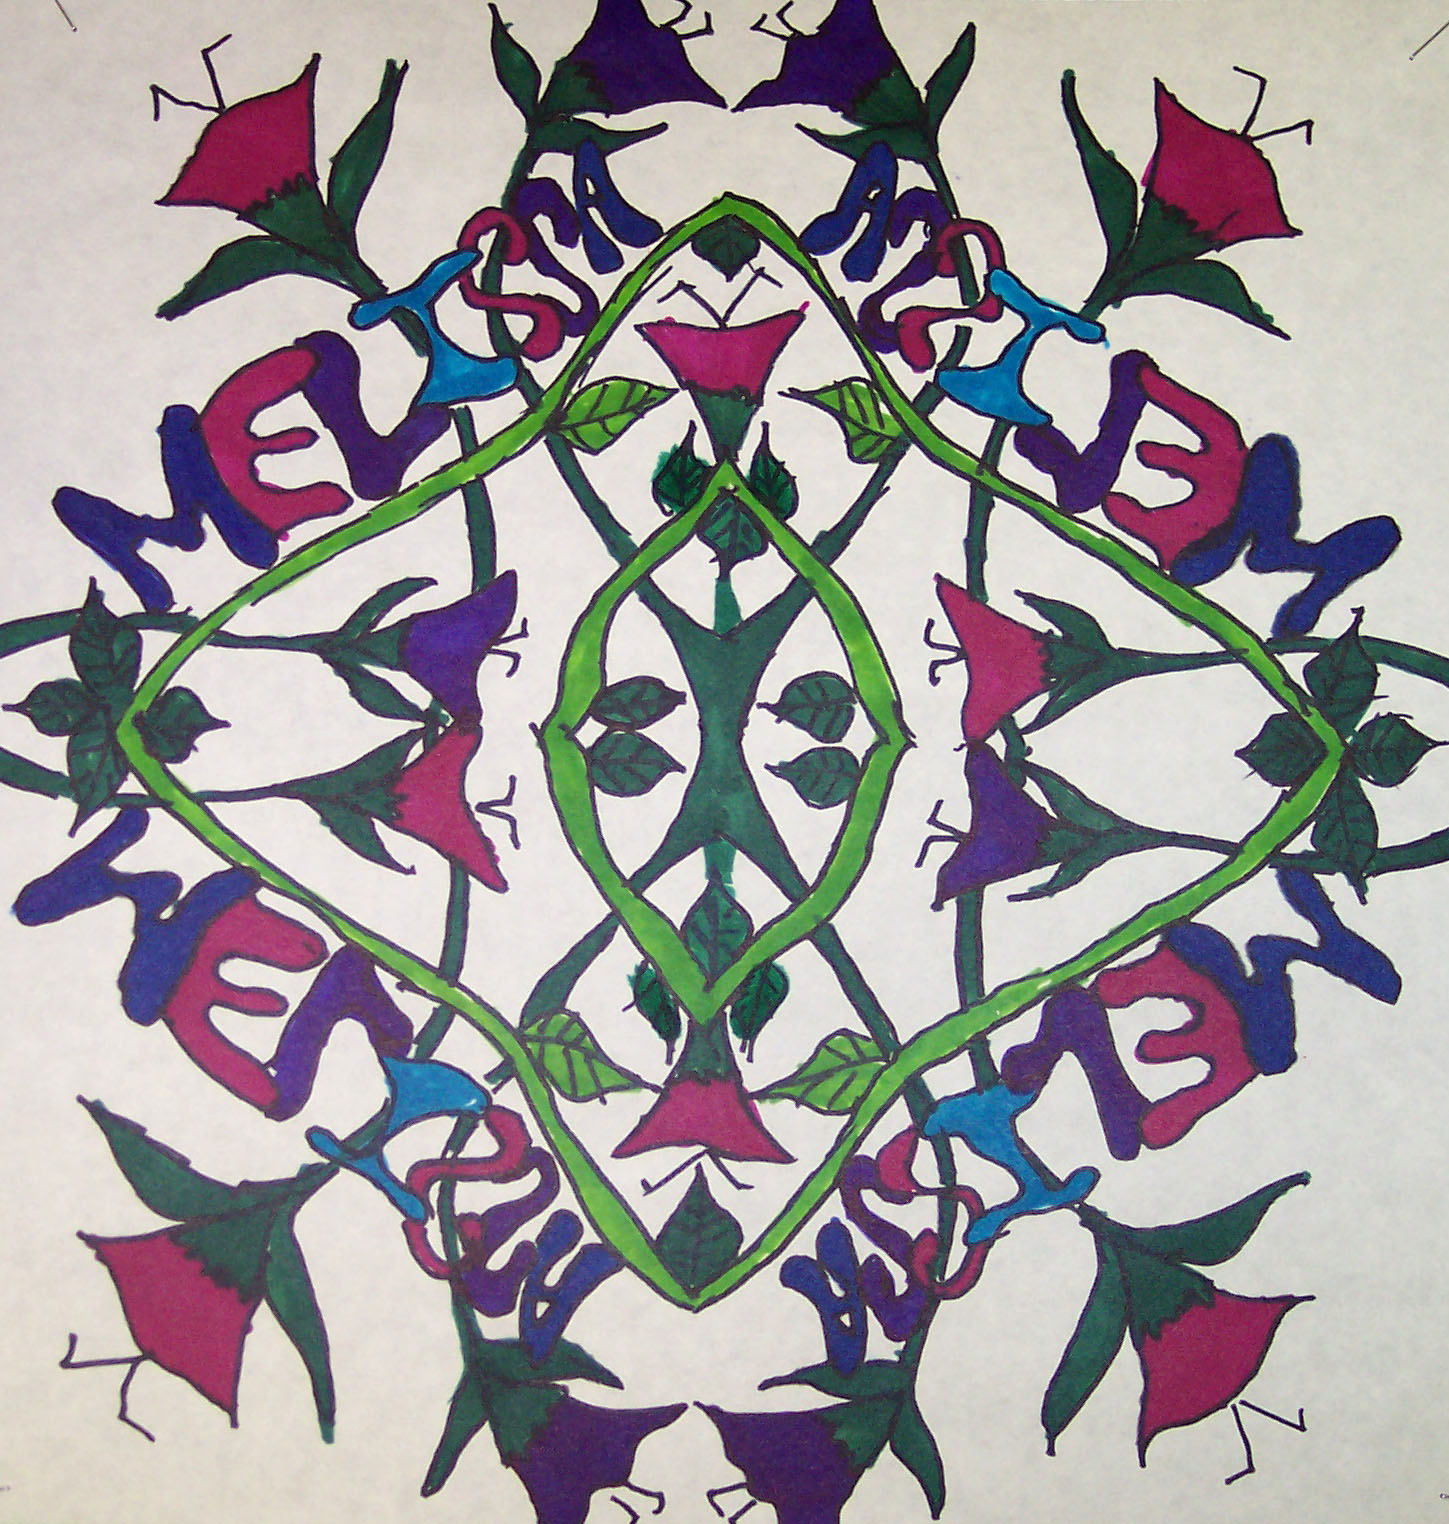 Welcome Radial Symmetrical Designs